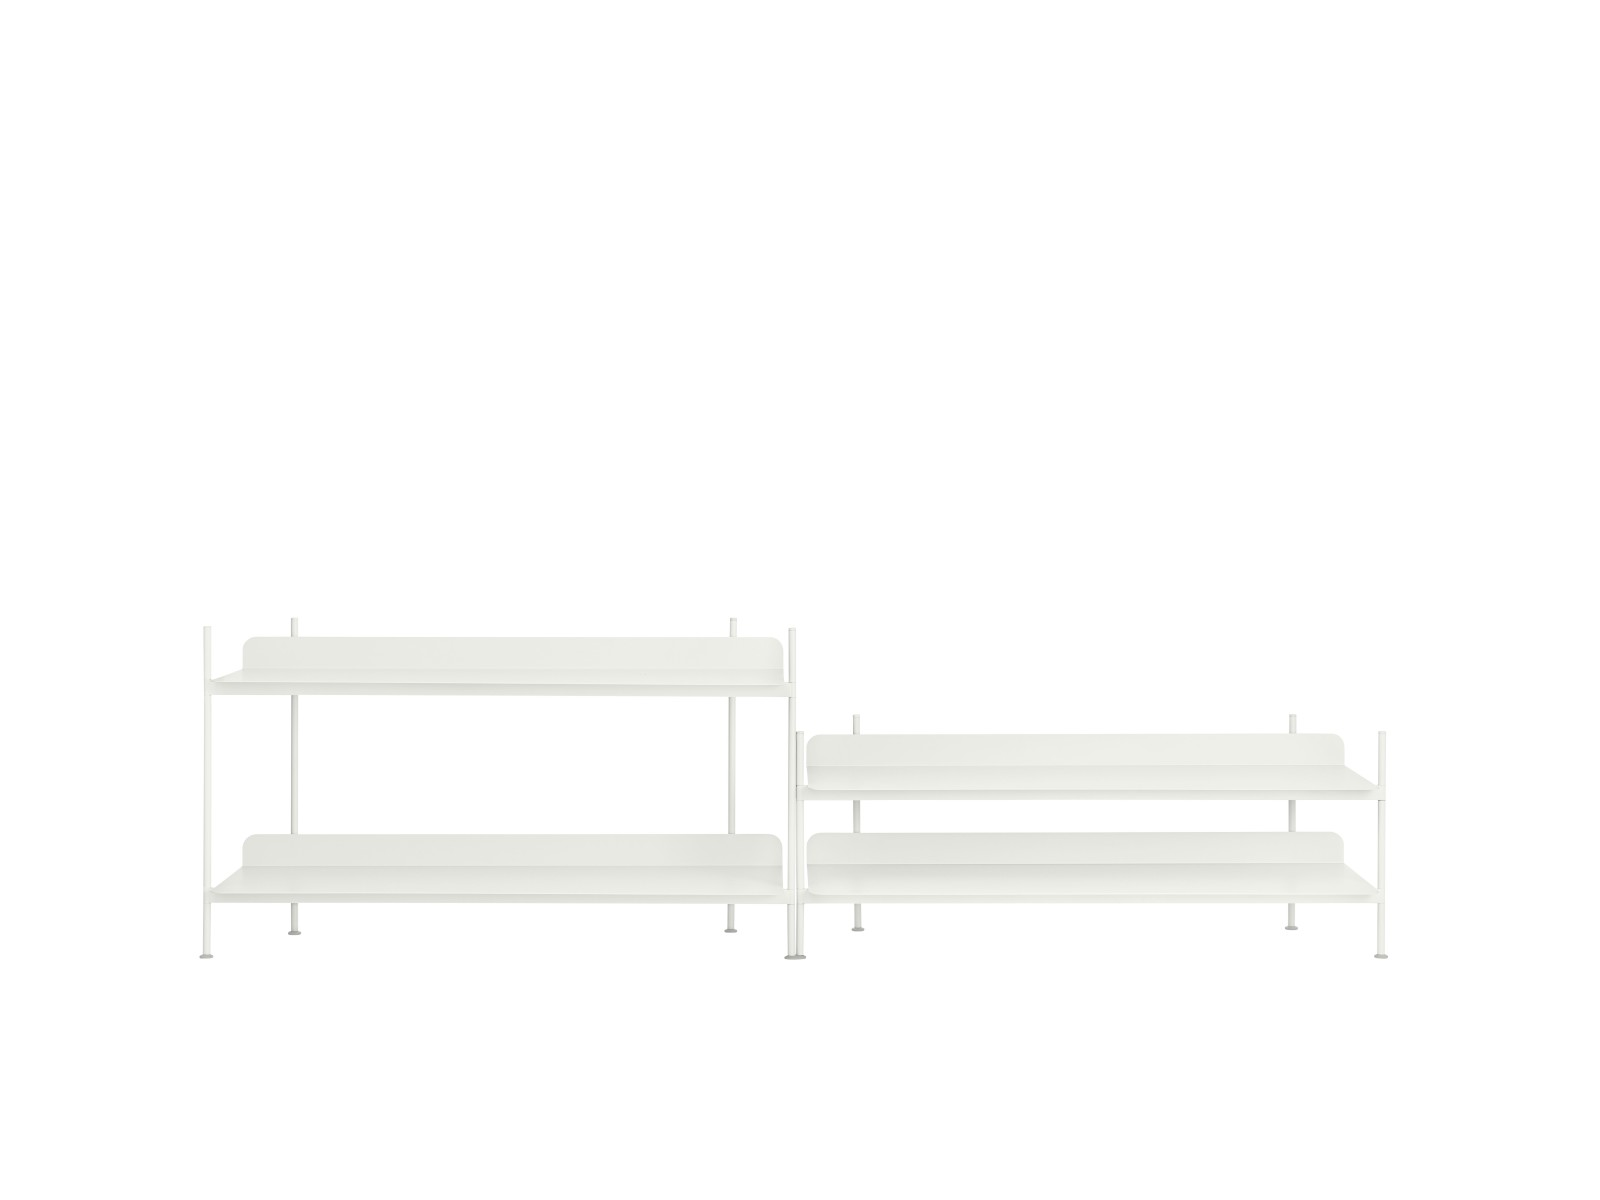 Compile Shelving System Configuration 5, White